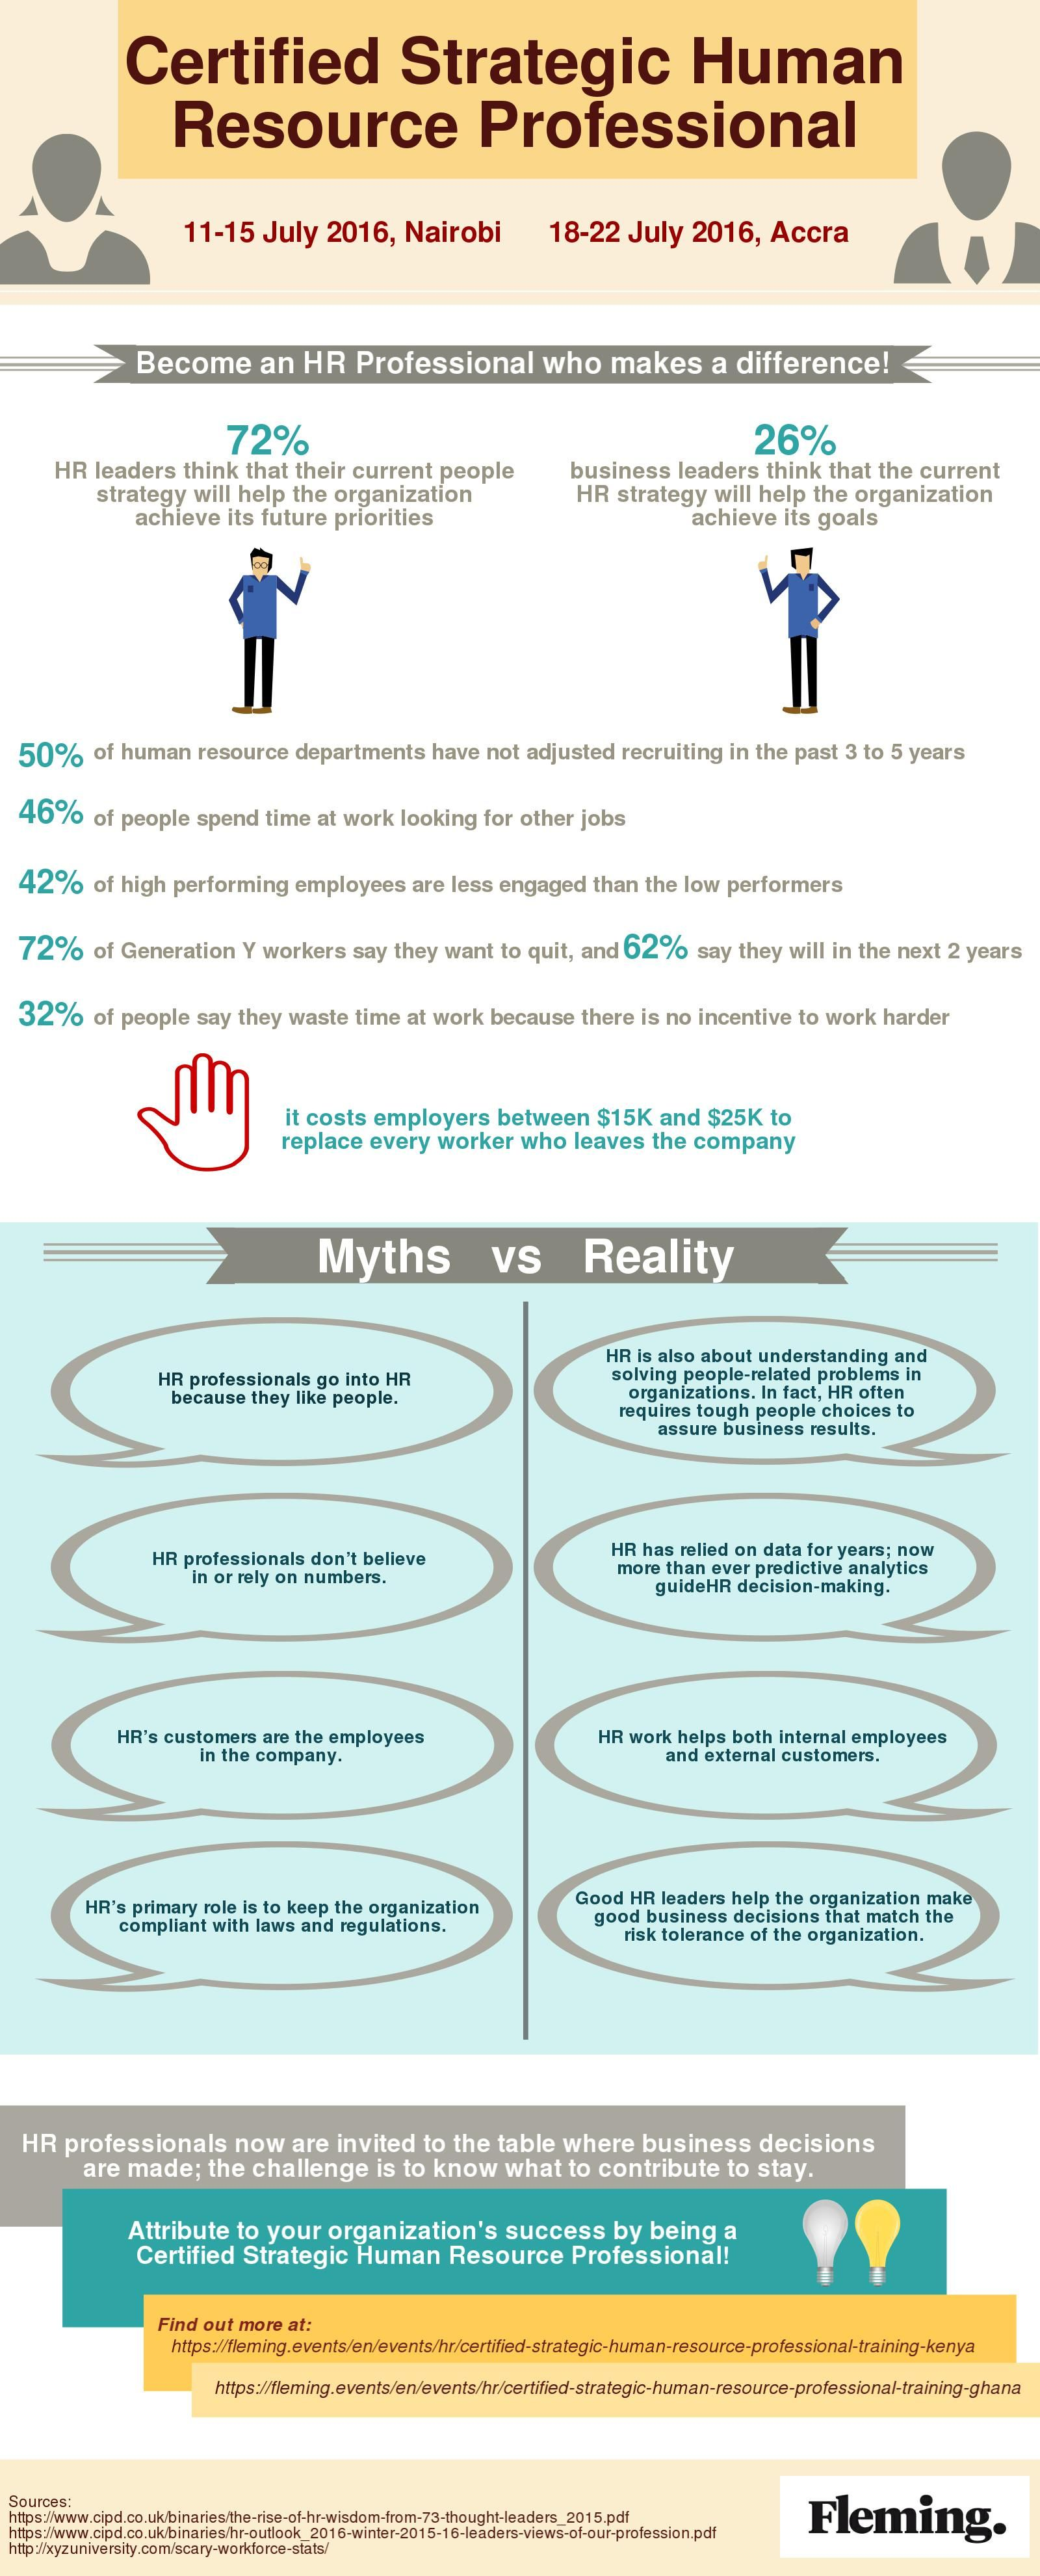 Take A Look At The Infographic About Hr Statistics And The Myths